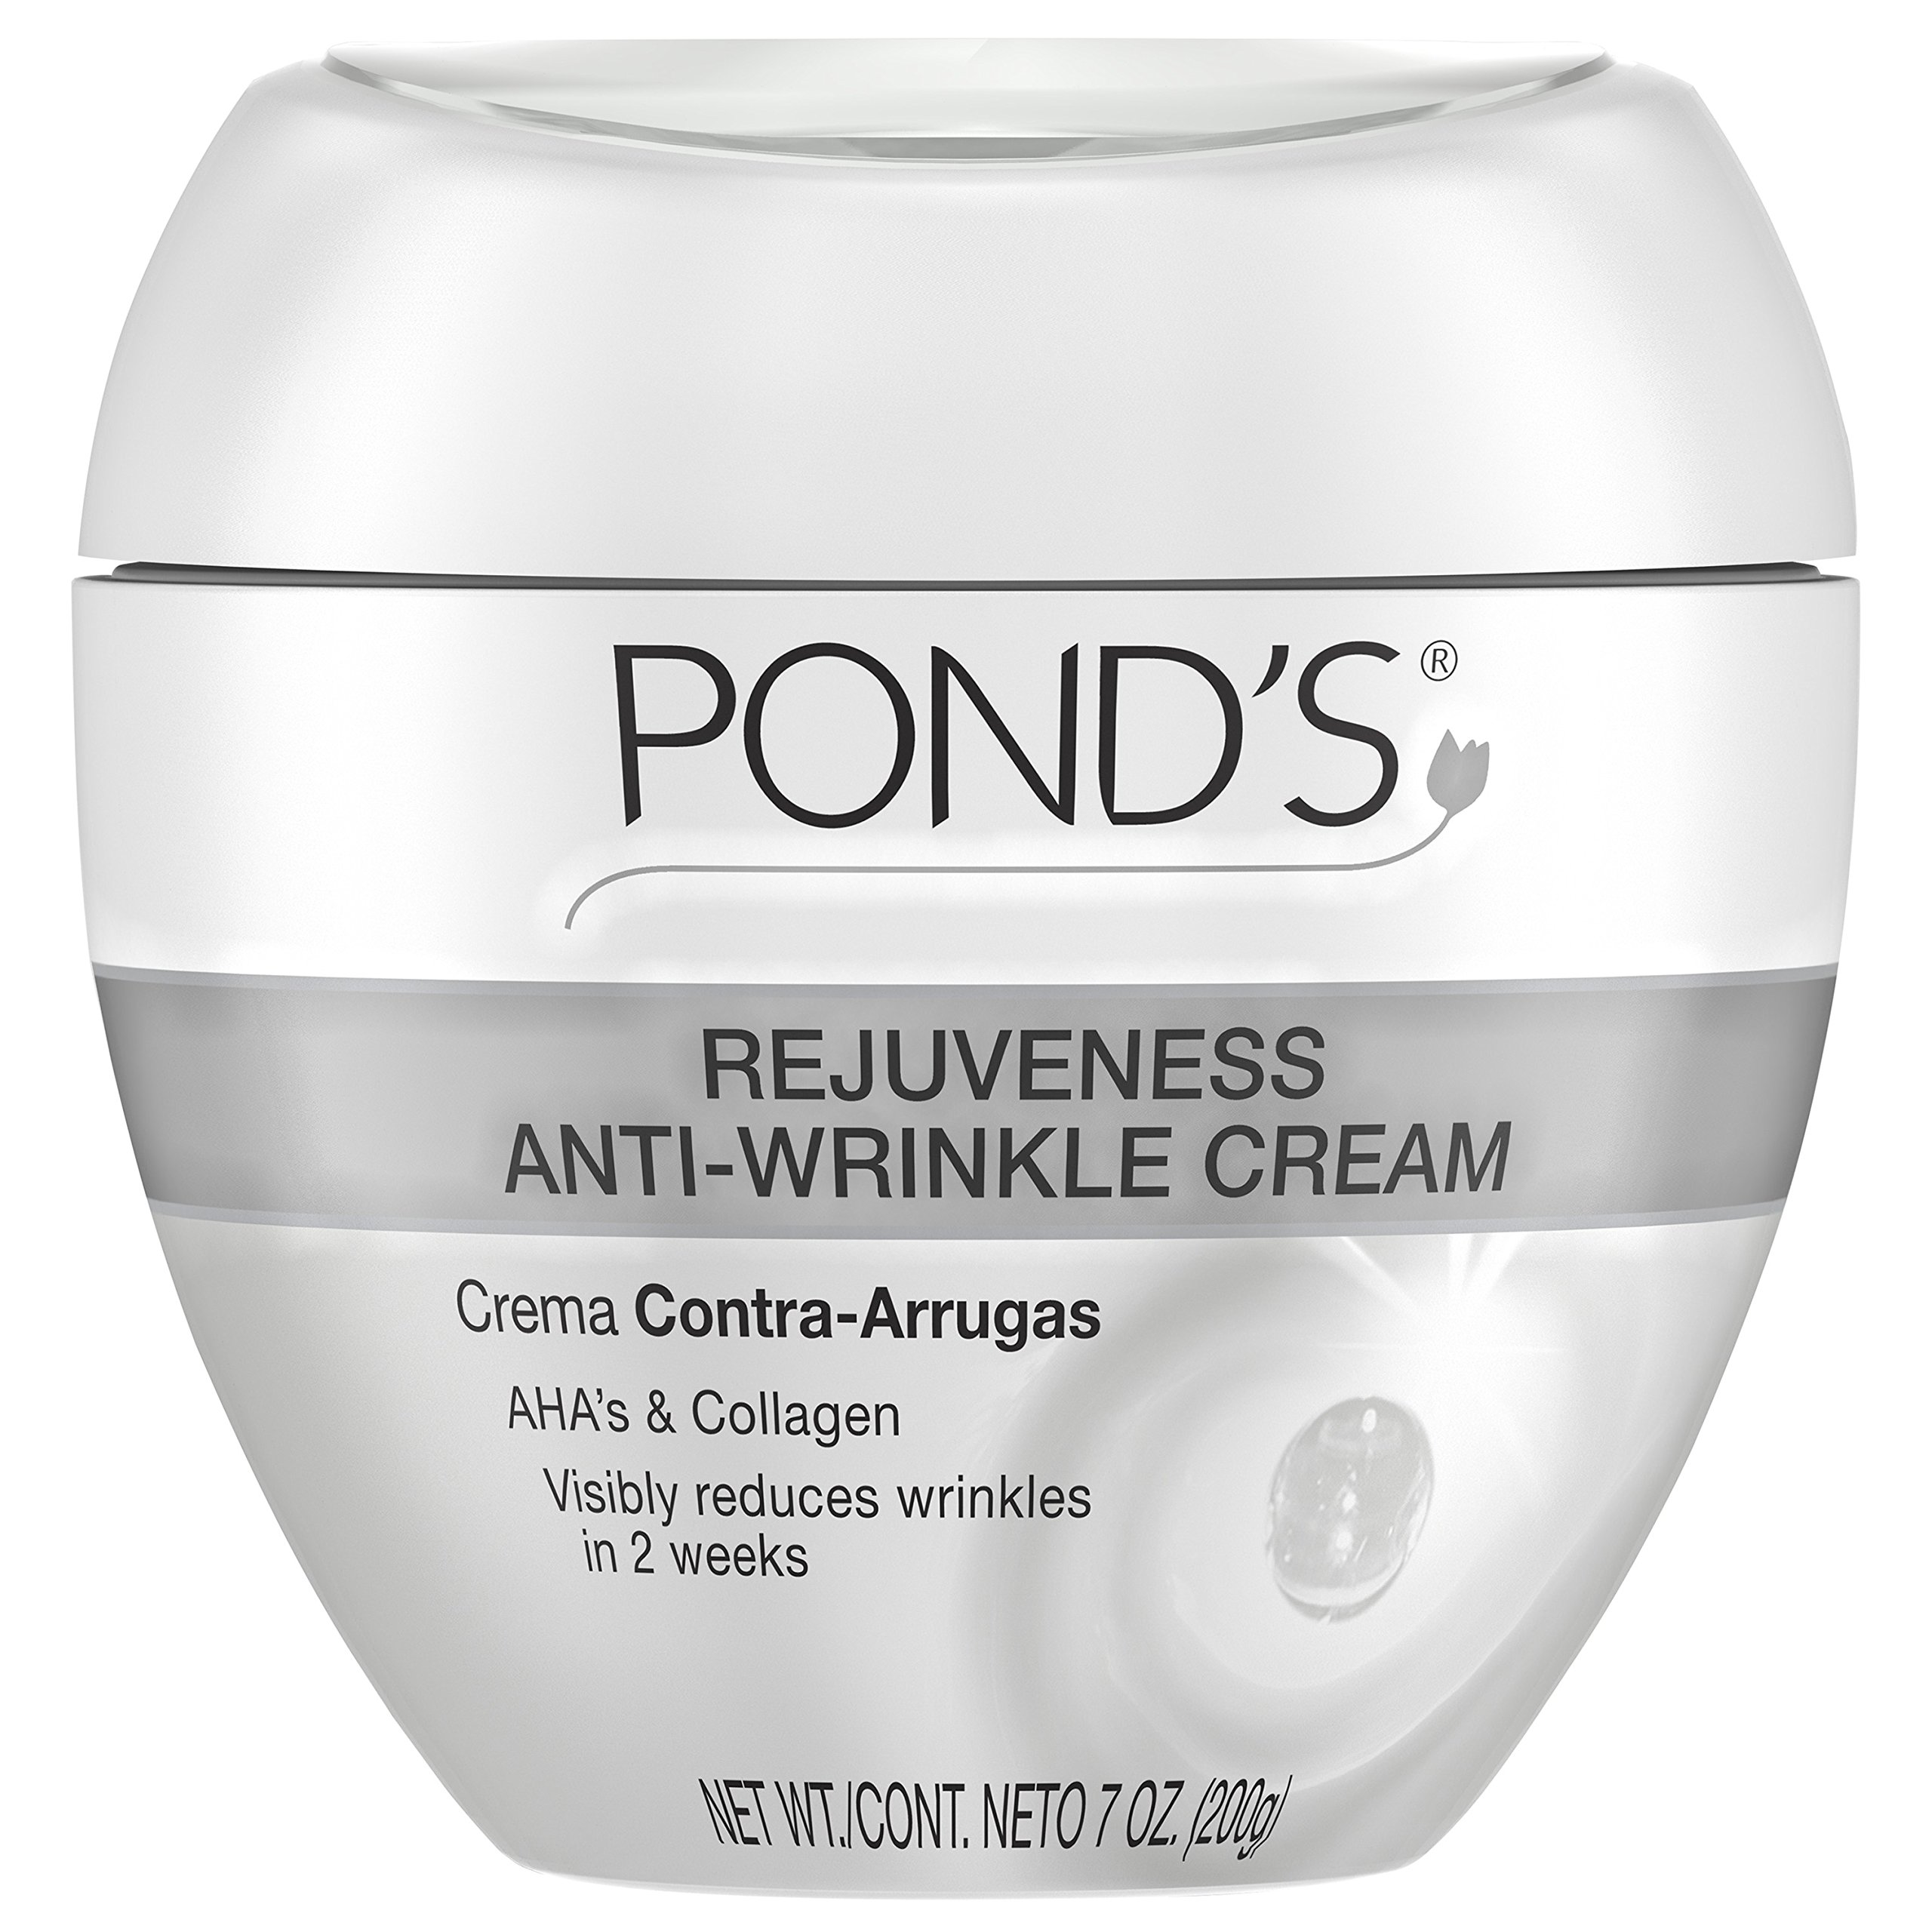 Pond's Rejuveness Anti-Wrinkle Cream Twin Pack, 2 Count by Pond's